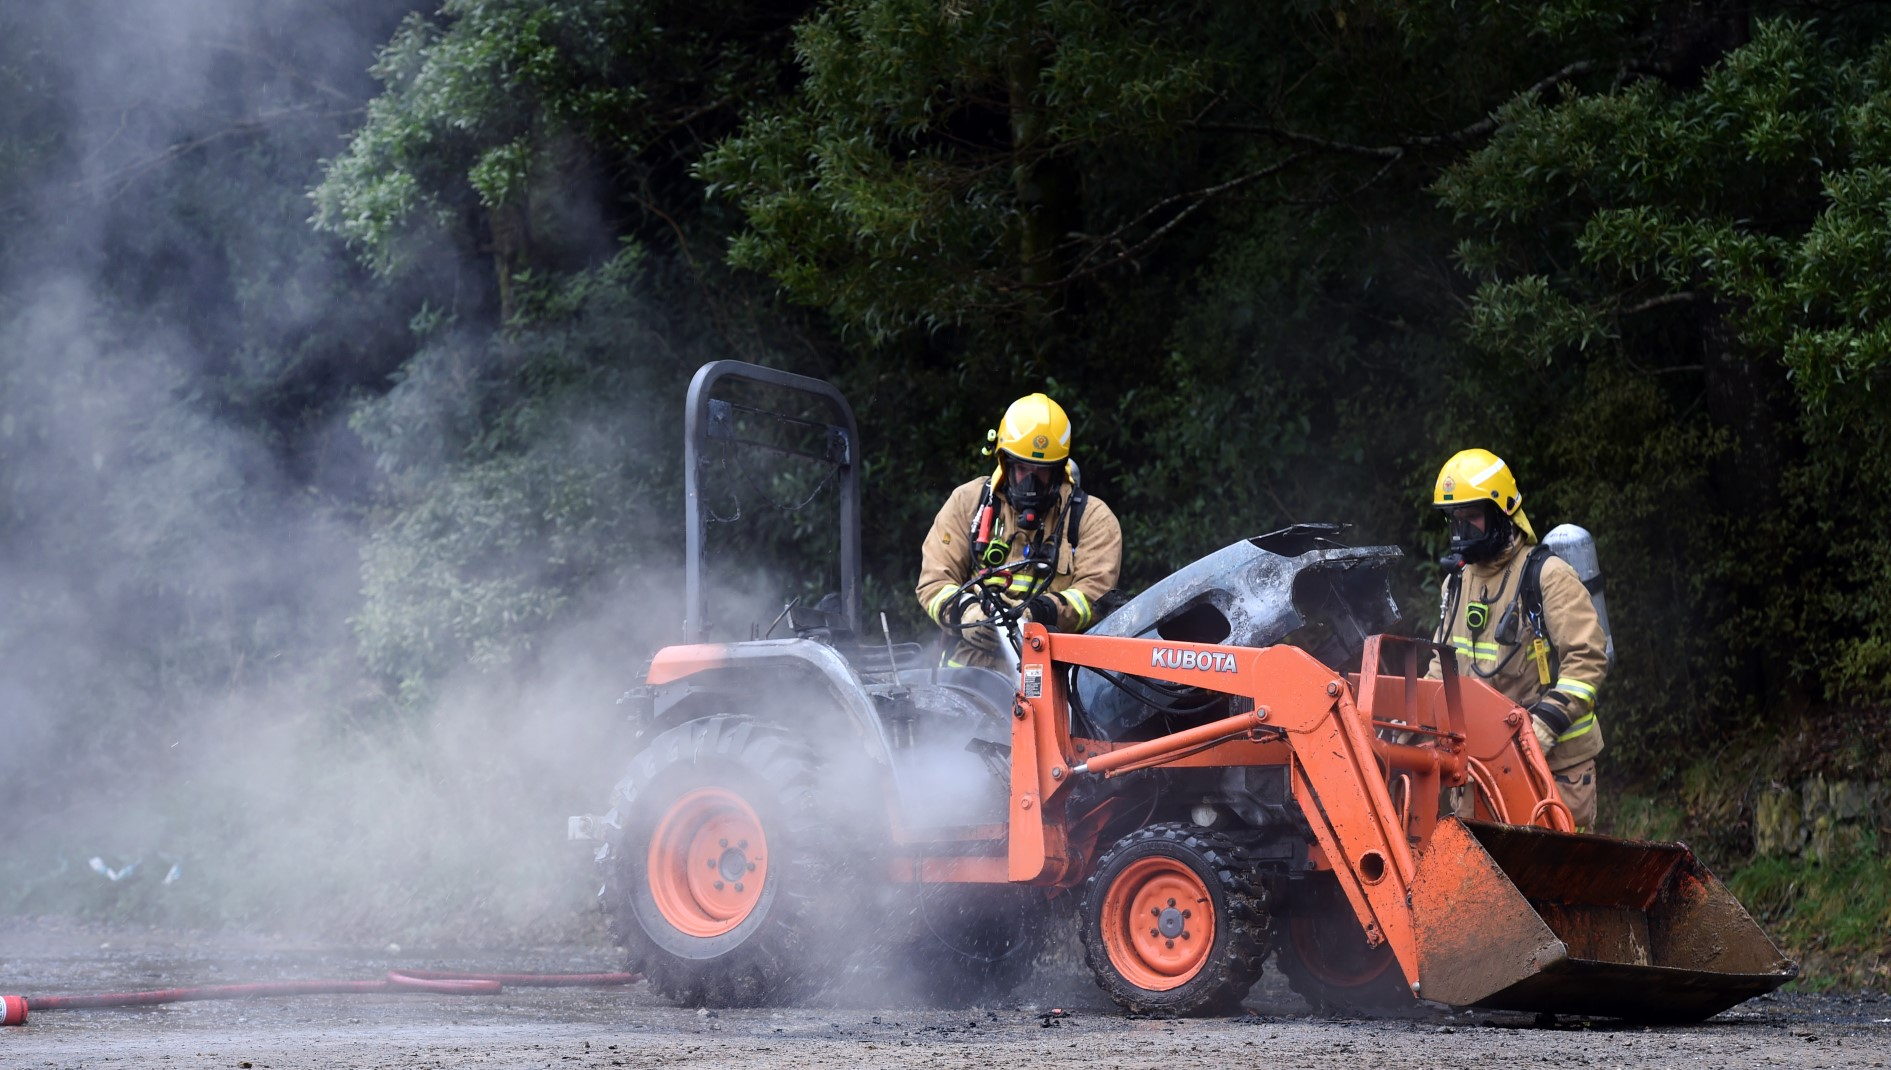 Firefighters extinguish a blaze which started in a tractor this afternoon. Photo: Peter McIntosh